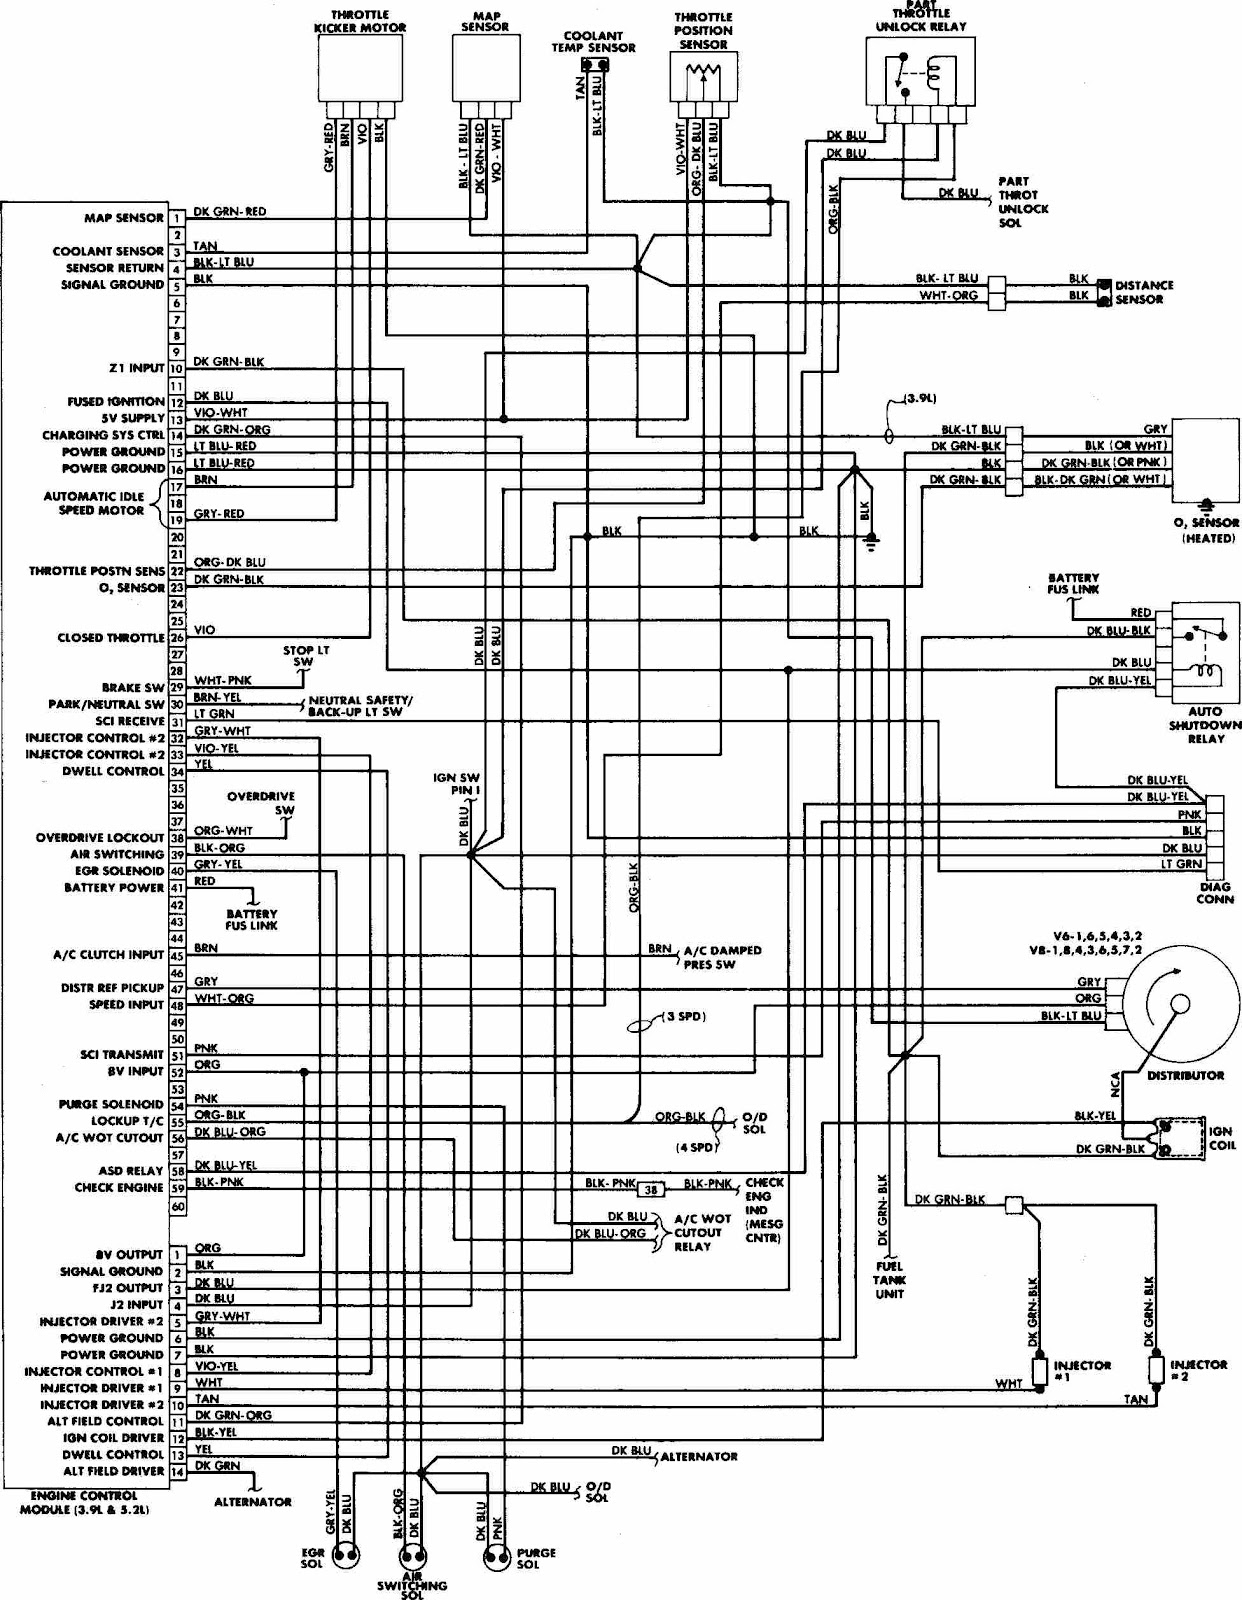 dodge ram van 1500 engine diagram 1996 3 9 1996